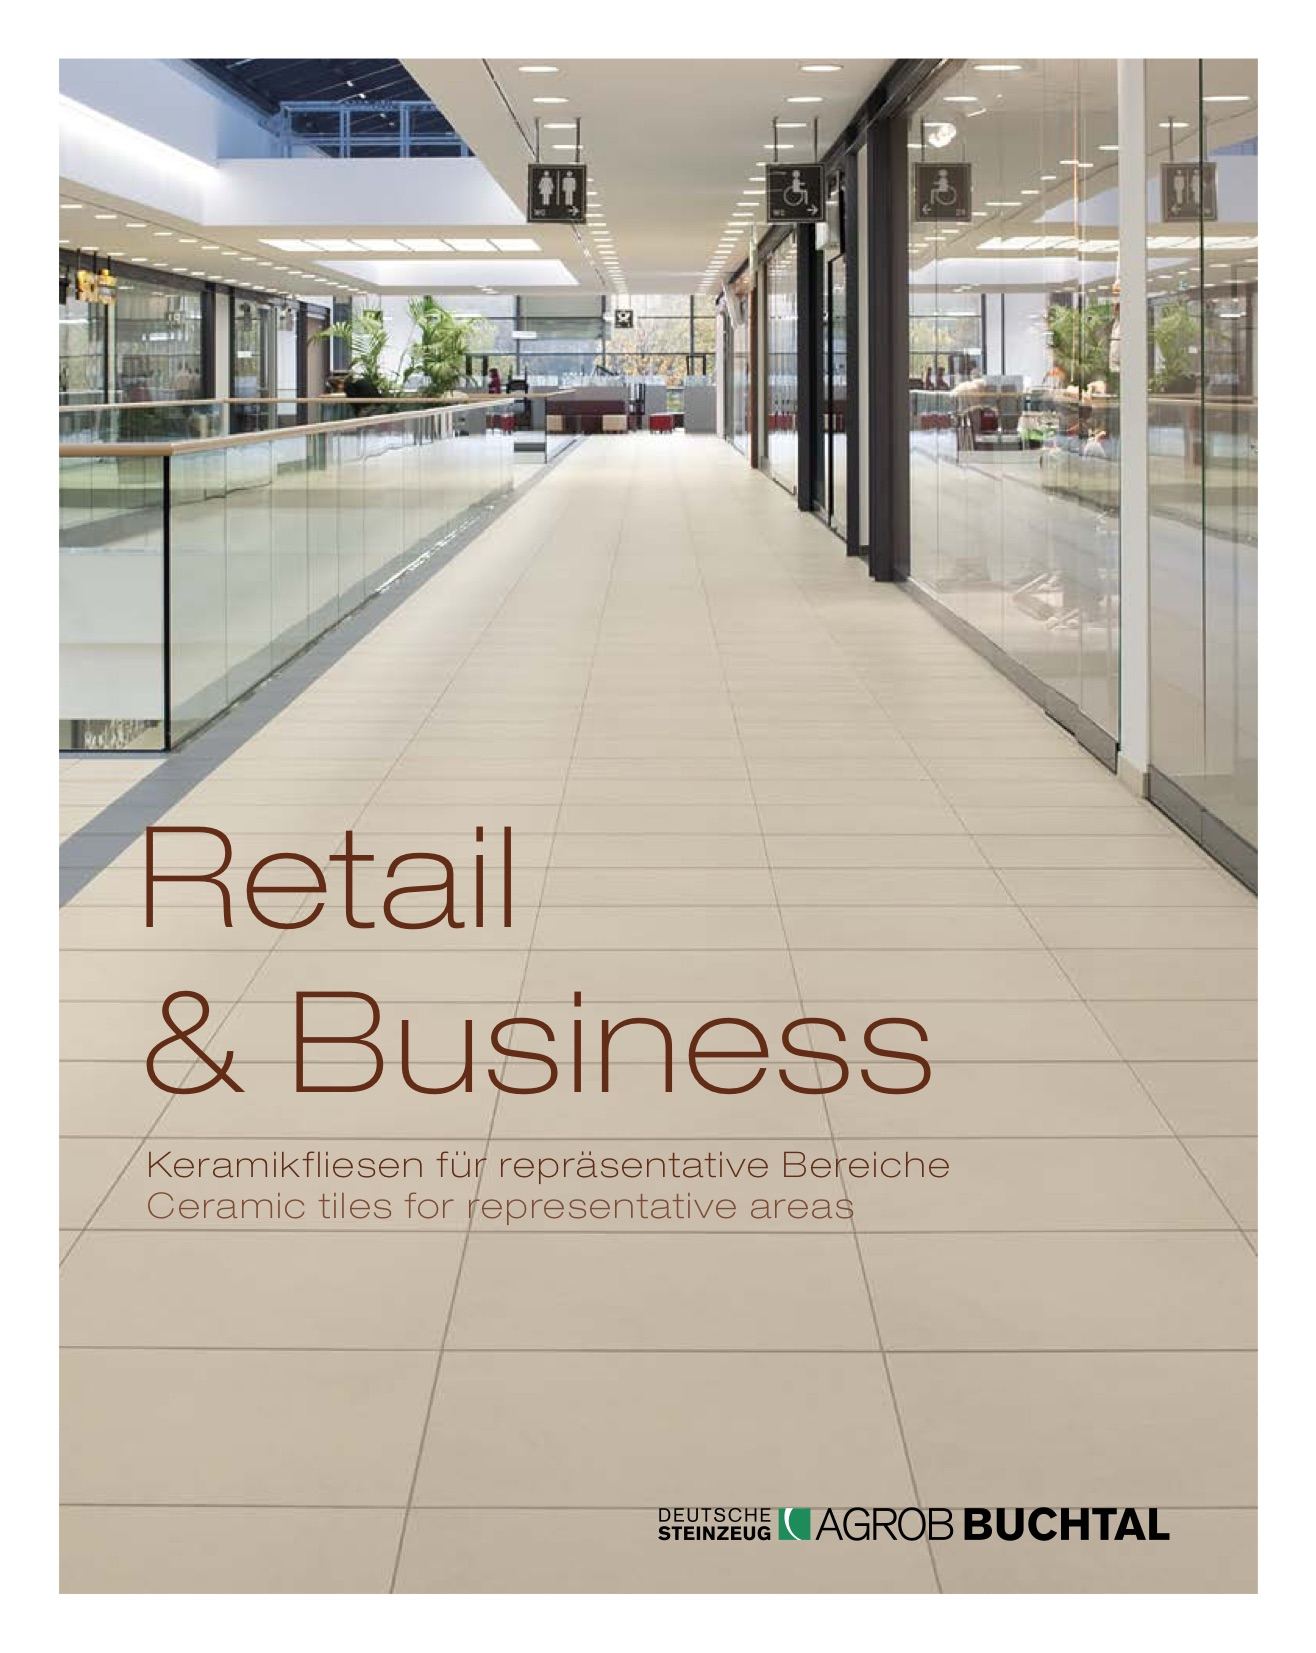 Retail & Business